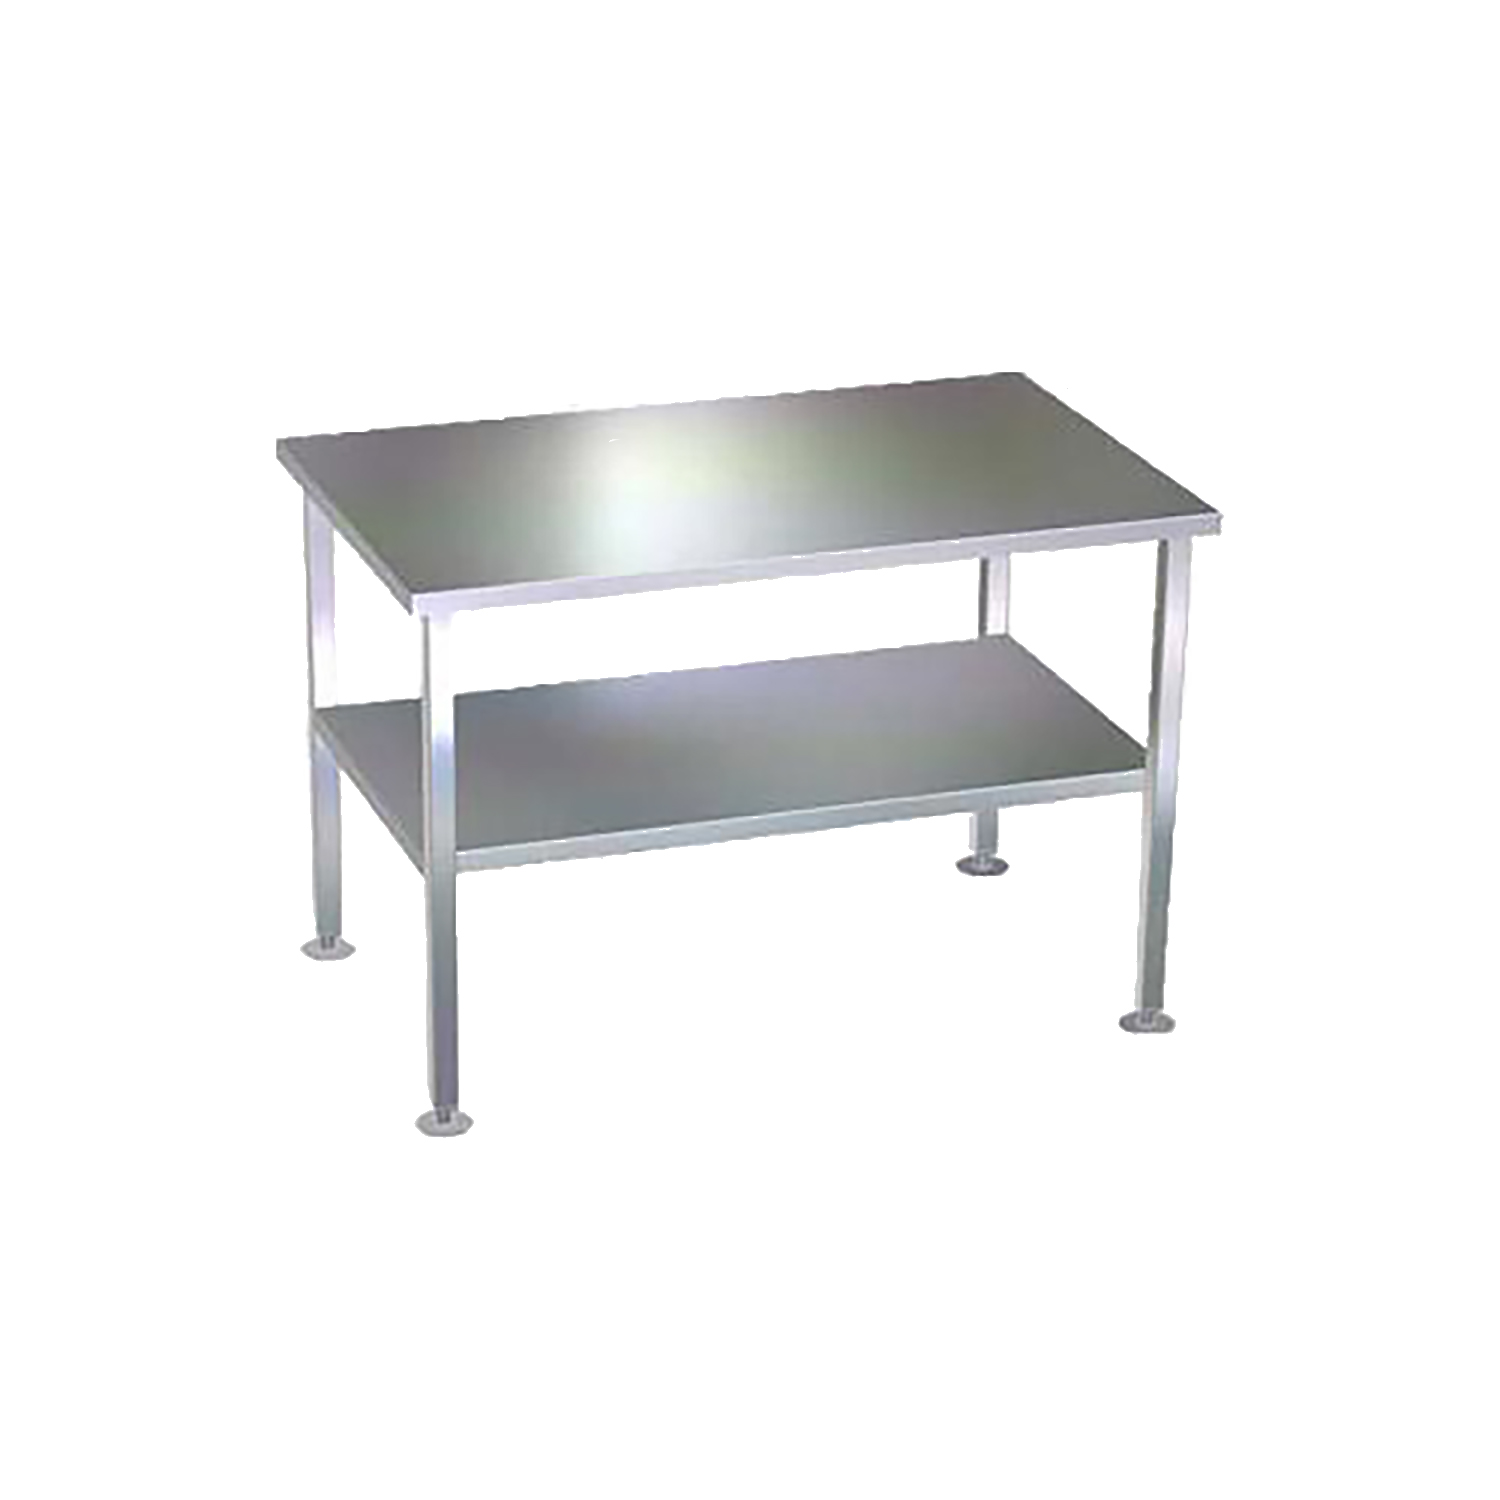 Clearance - Avante Stainless Steel Work Table